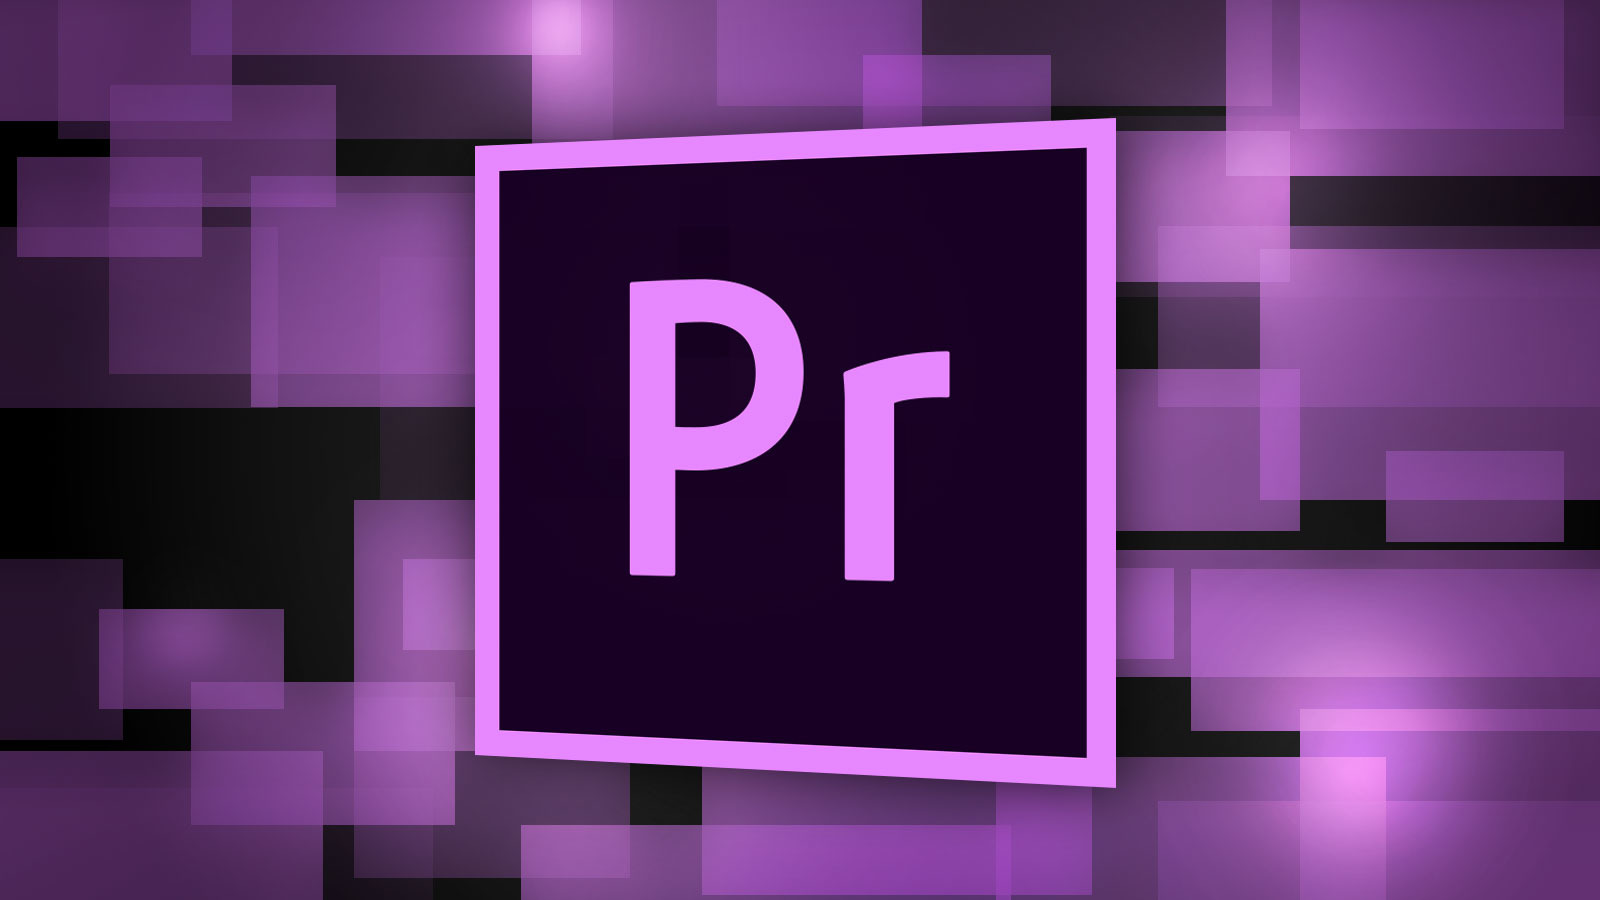 Adobe Premiere Pro from the Adobe suite is a video editing tool of the non linear editing age.